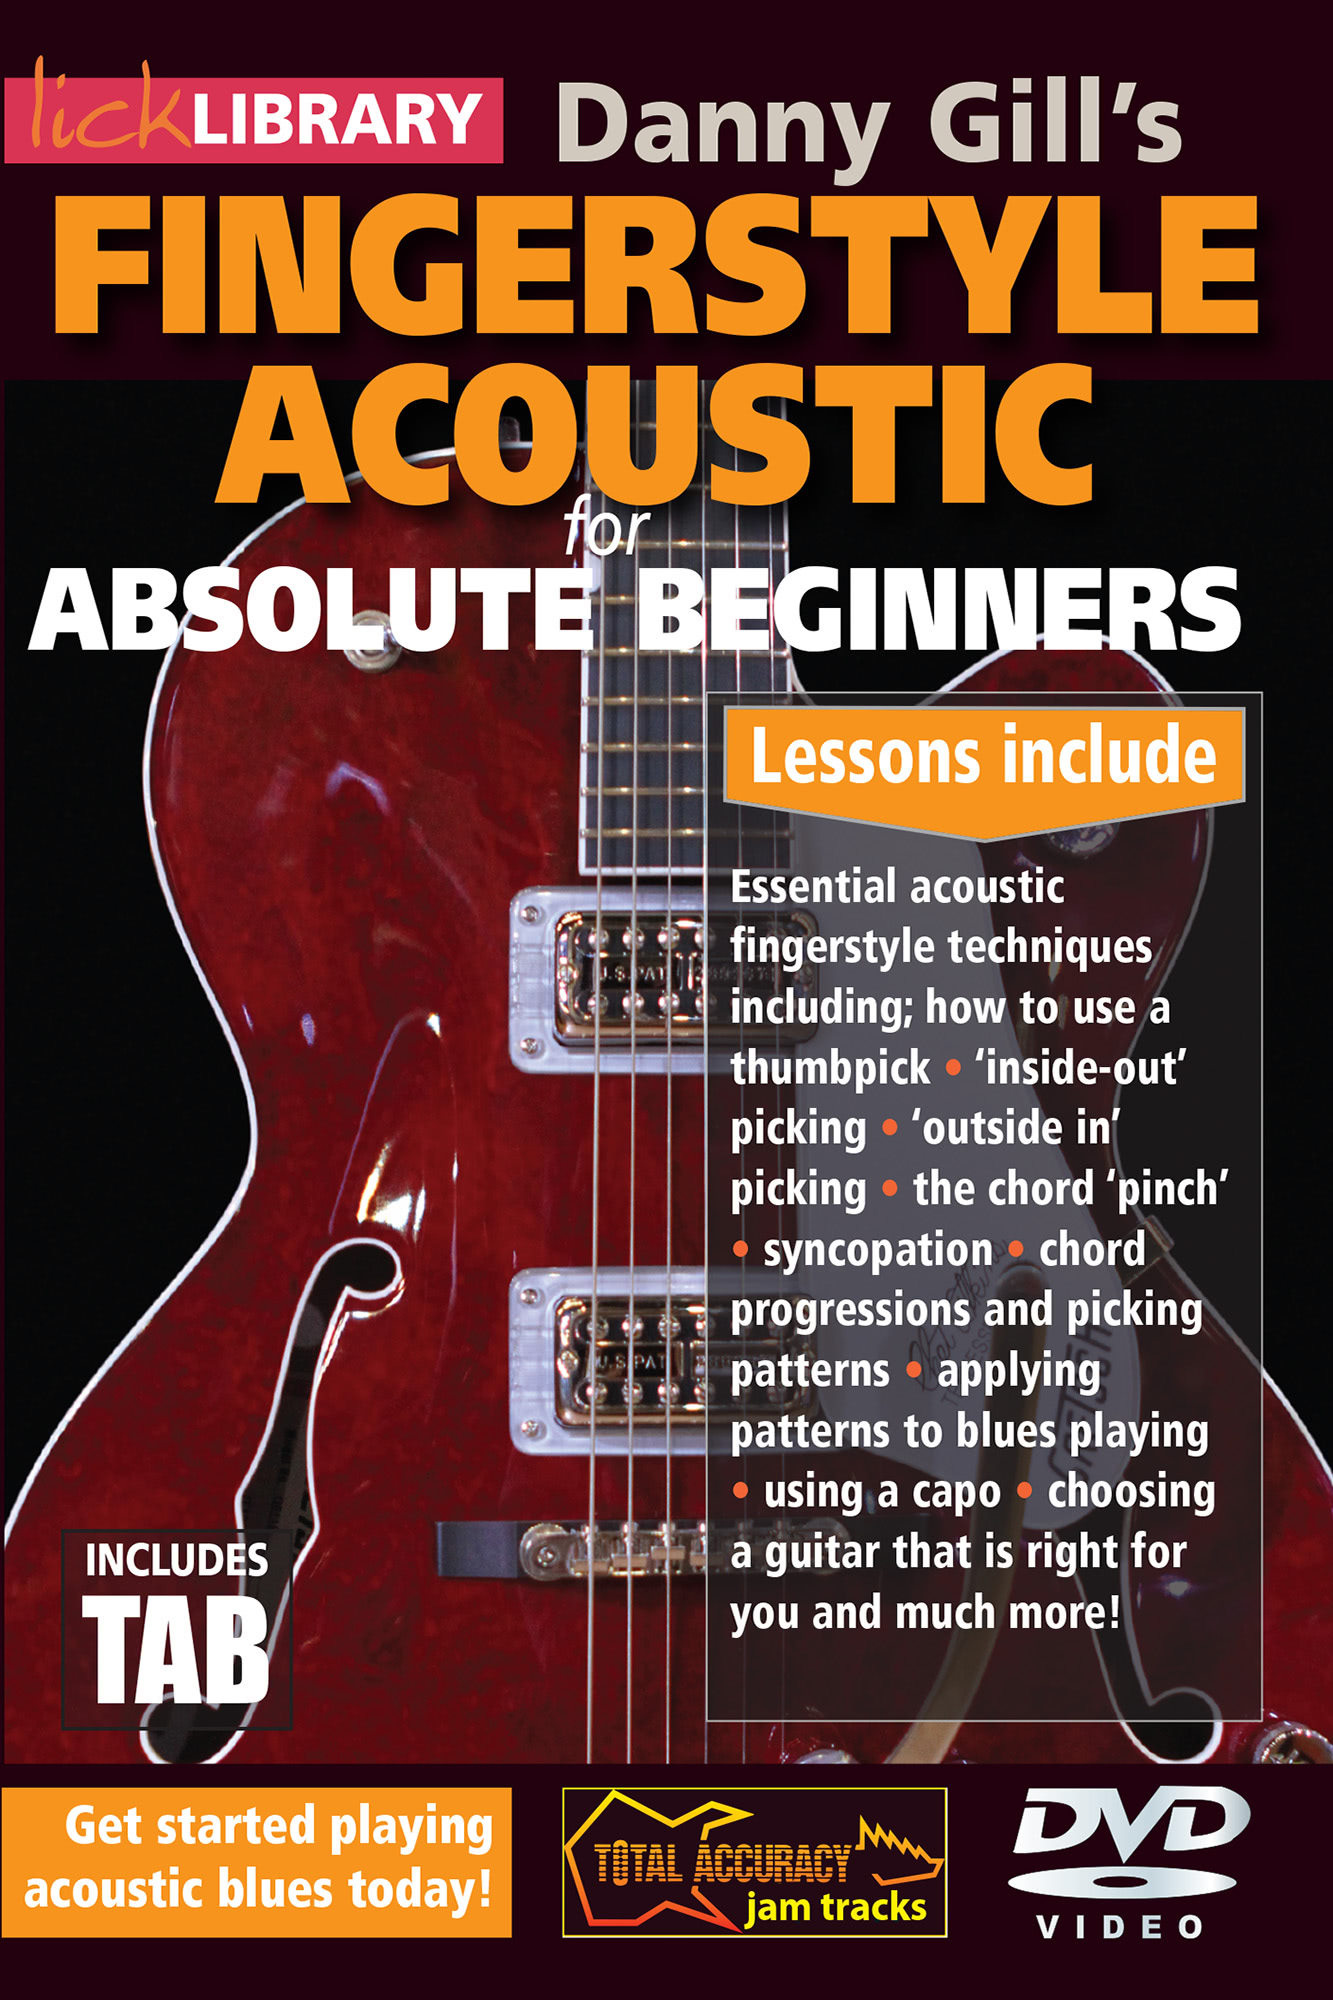 Acoustic Fingerstyle For Absolute Beginners